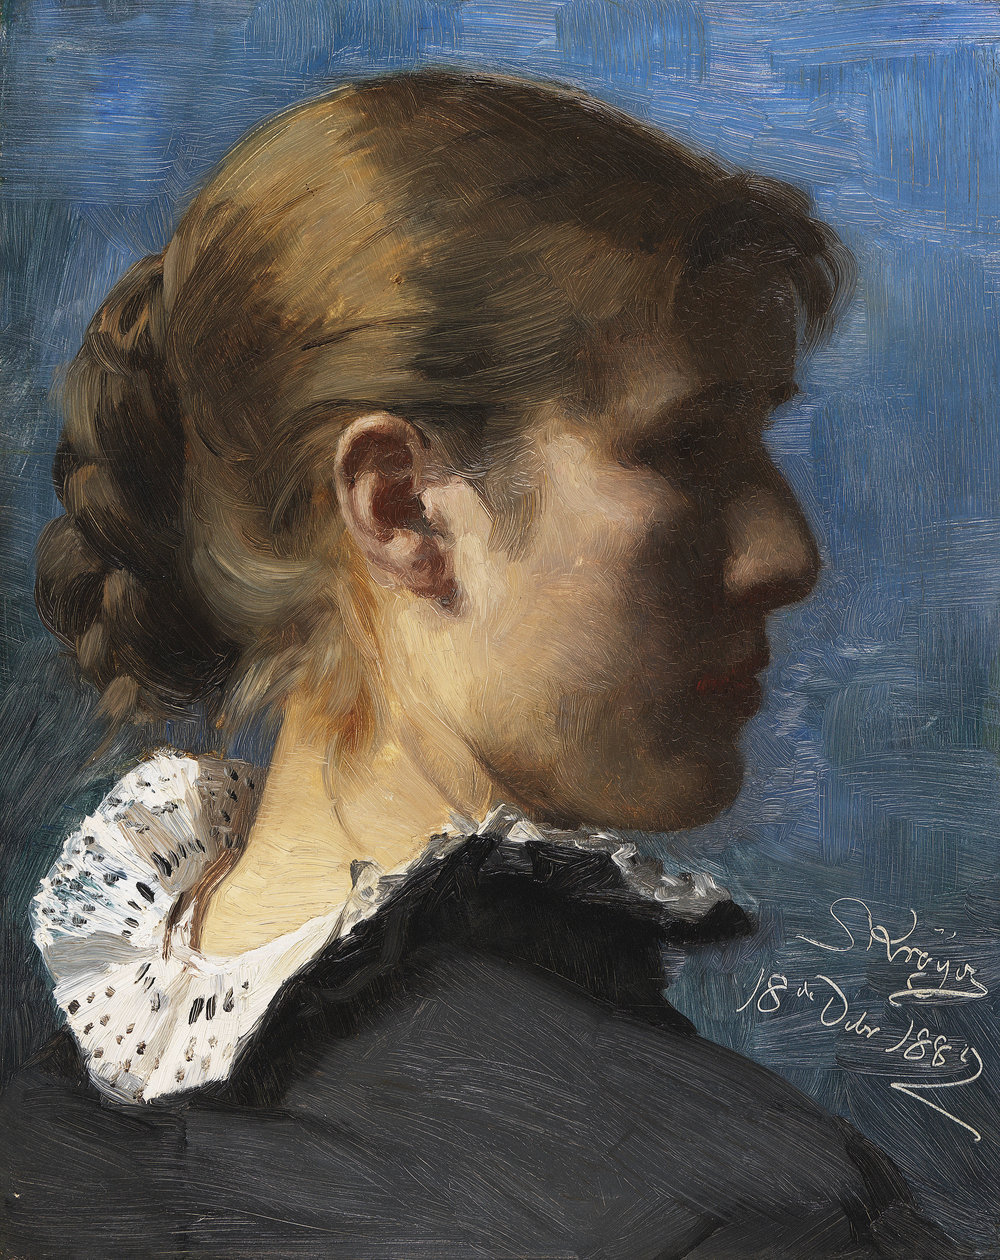 Peder Severin Krøyer  (b. 1851)  Portrait of the Painter Anne Ancher  14 ¼ x 11 ⅜ in. oil on canvas